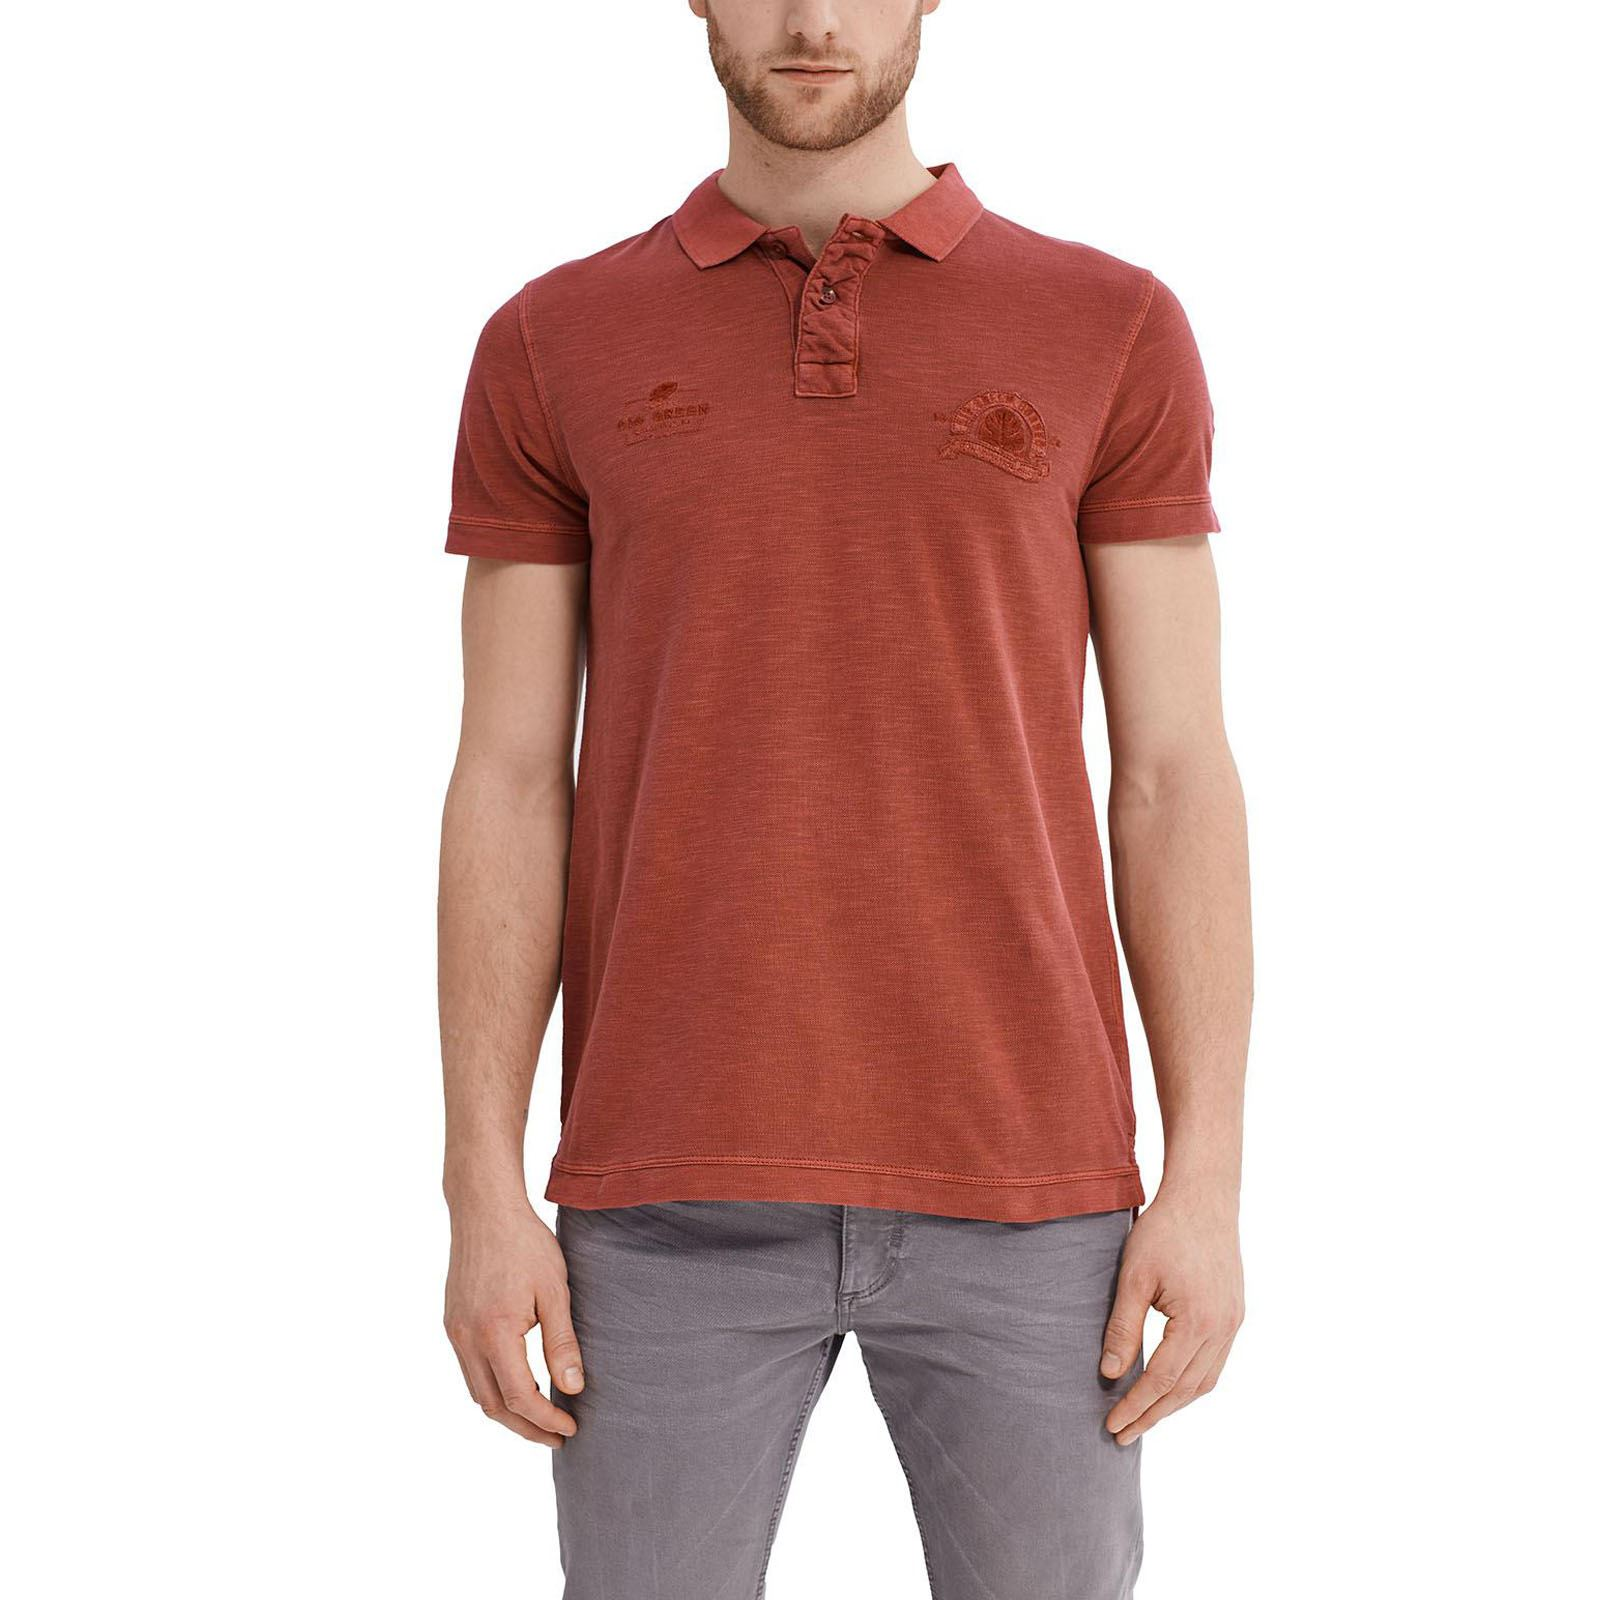 Homme PoloRouge Esprit PoloRouge V Homme Esprit Esprit PoloRouge V Homme doxBWerCQE